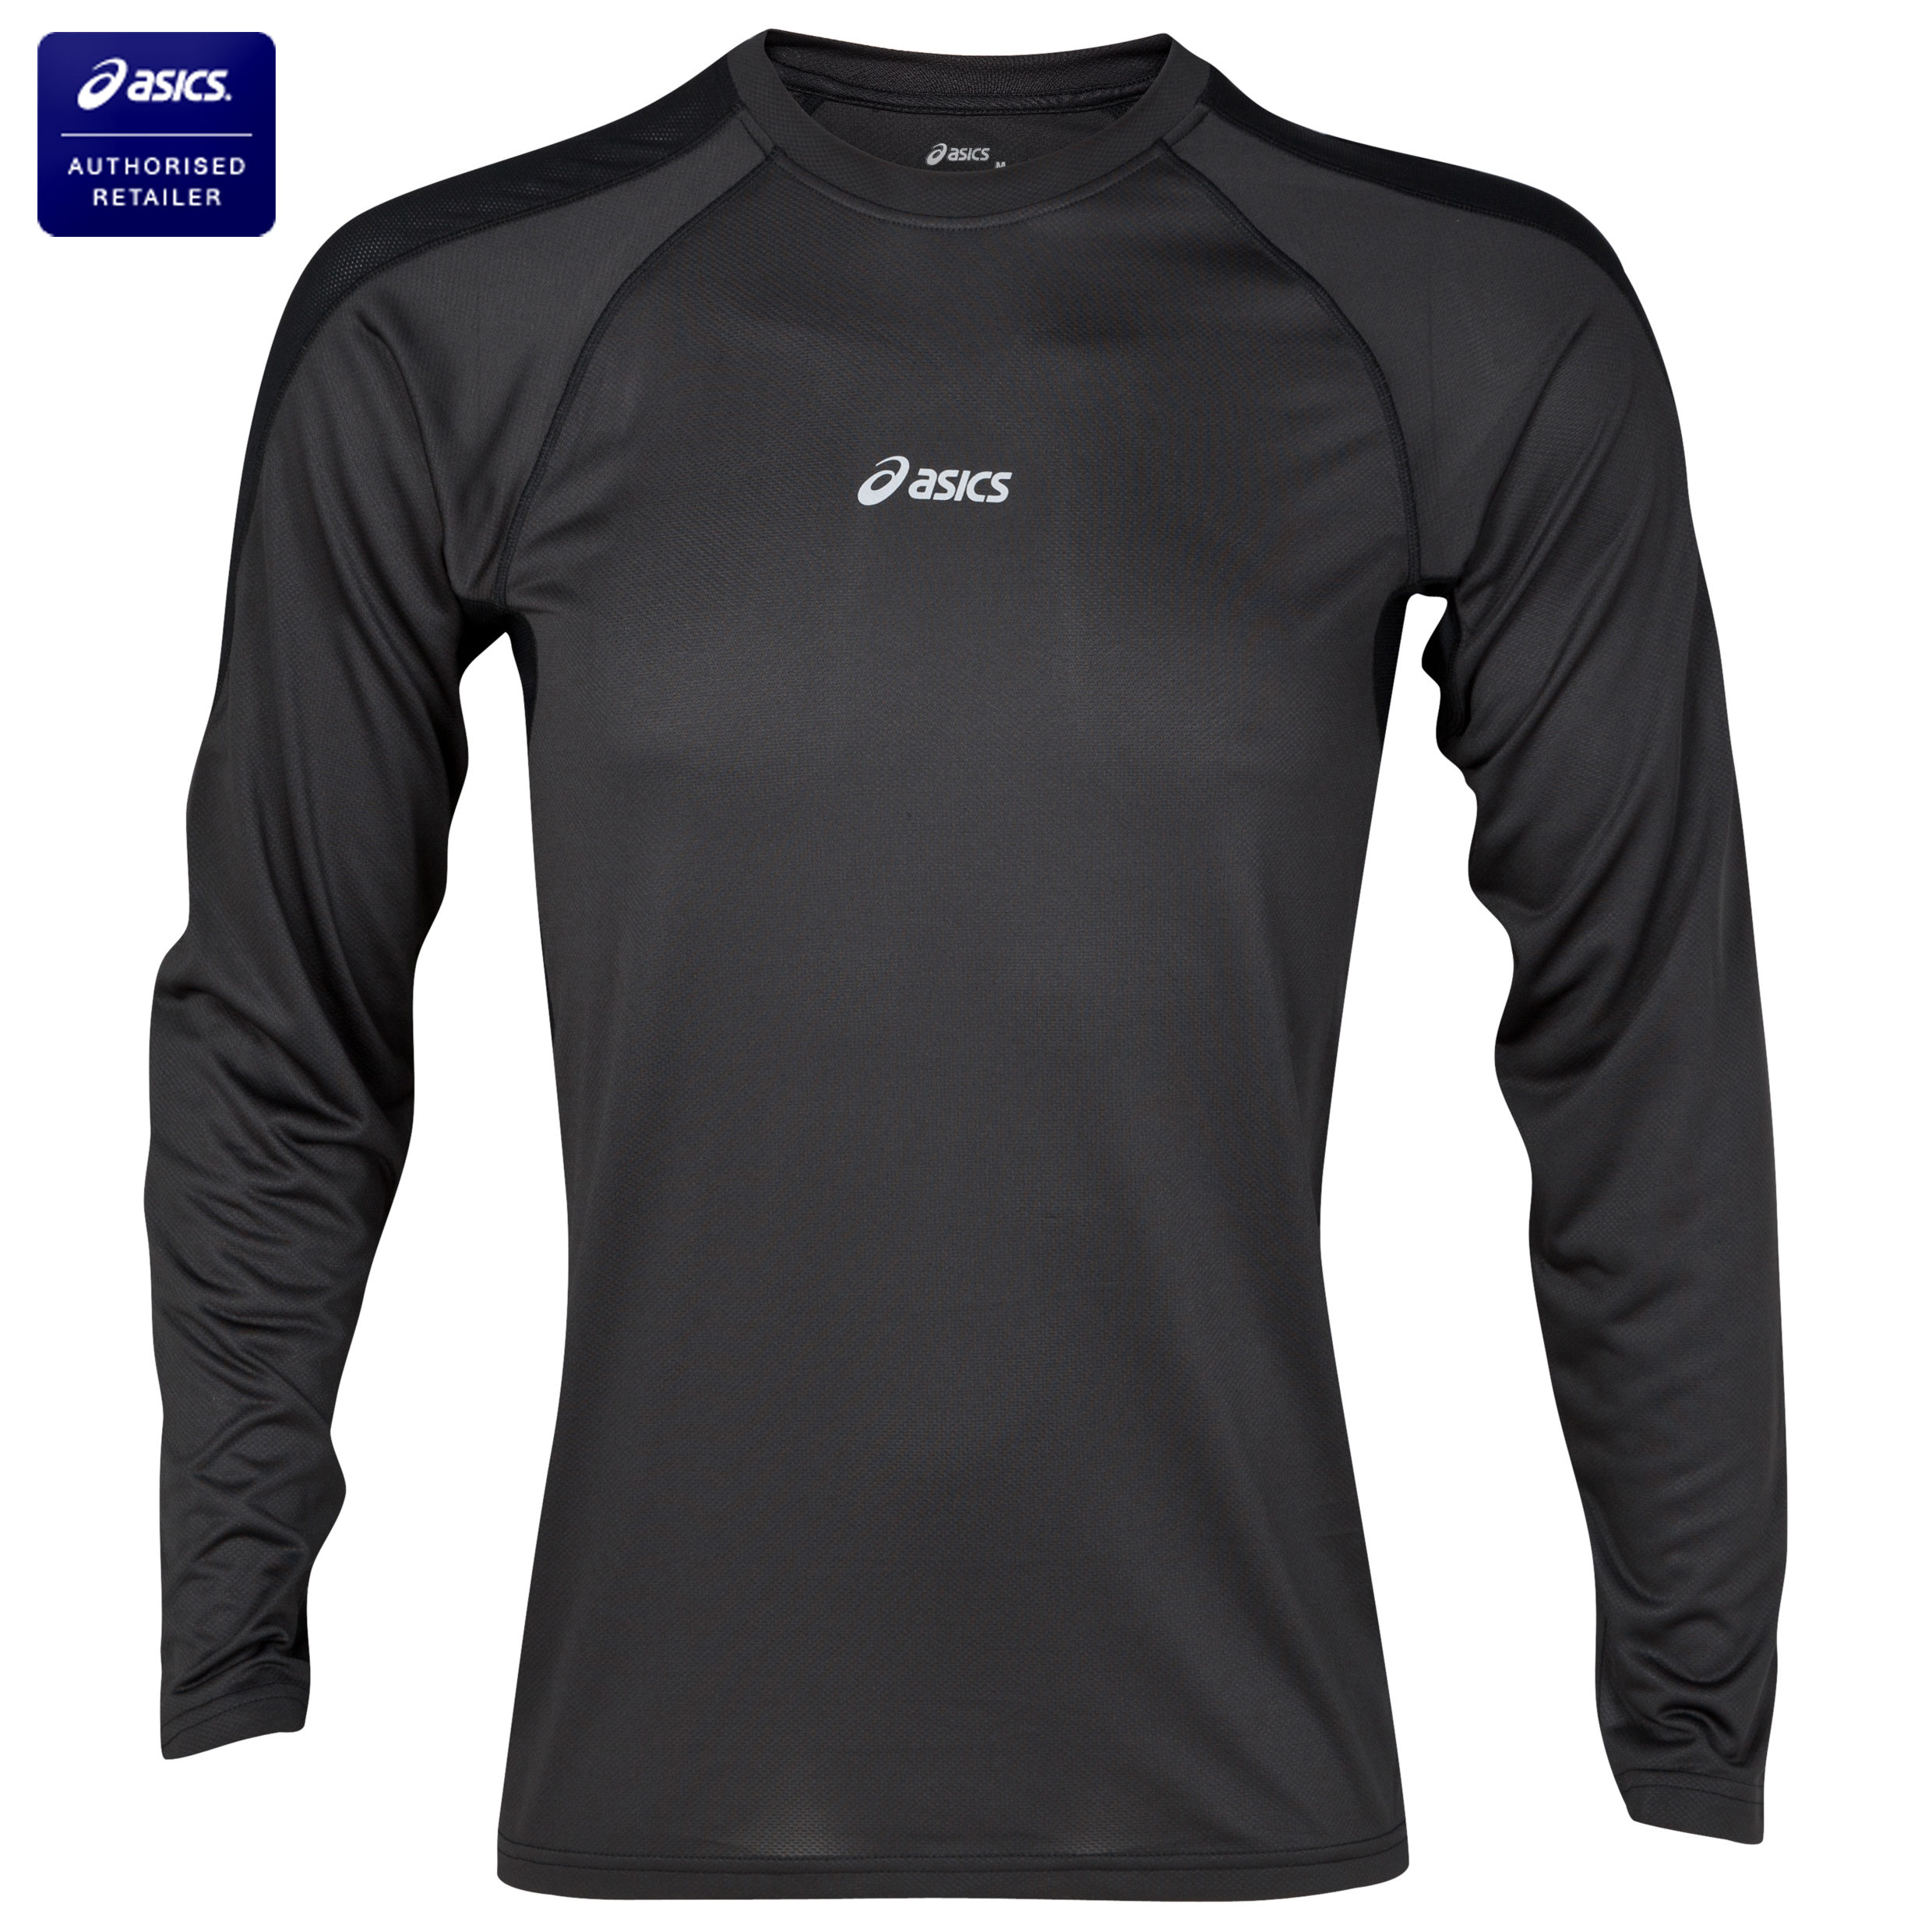 Asics Hermes Crew Top - Long Sleeve - Black